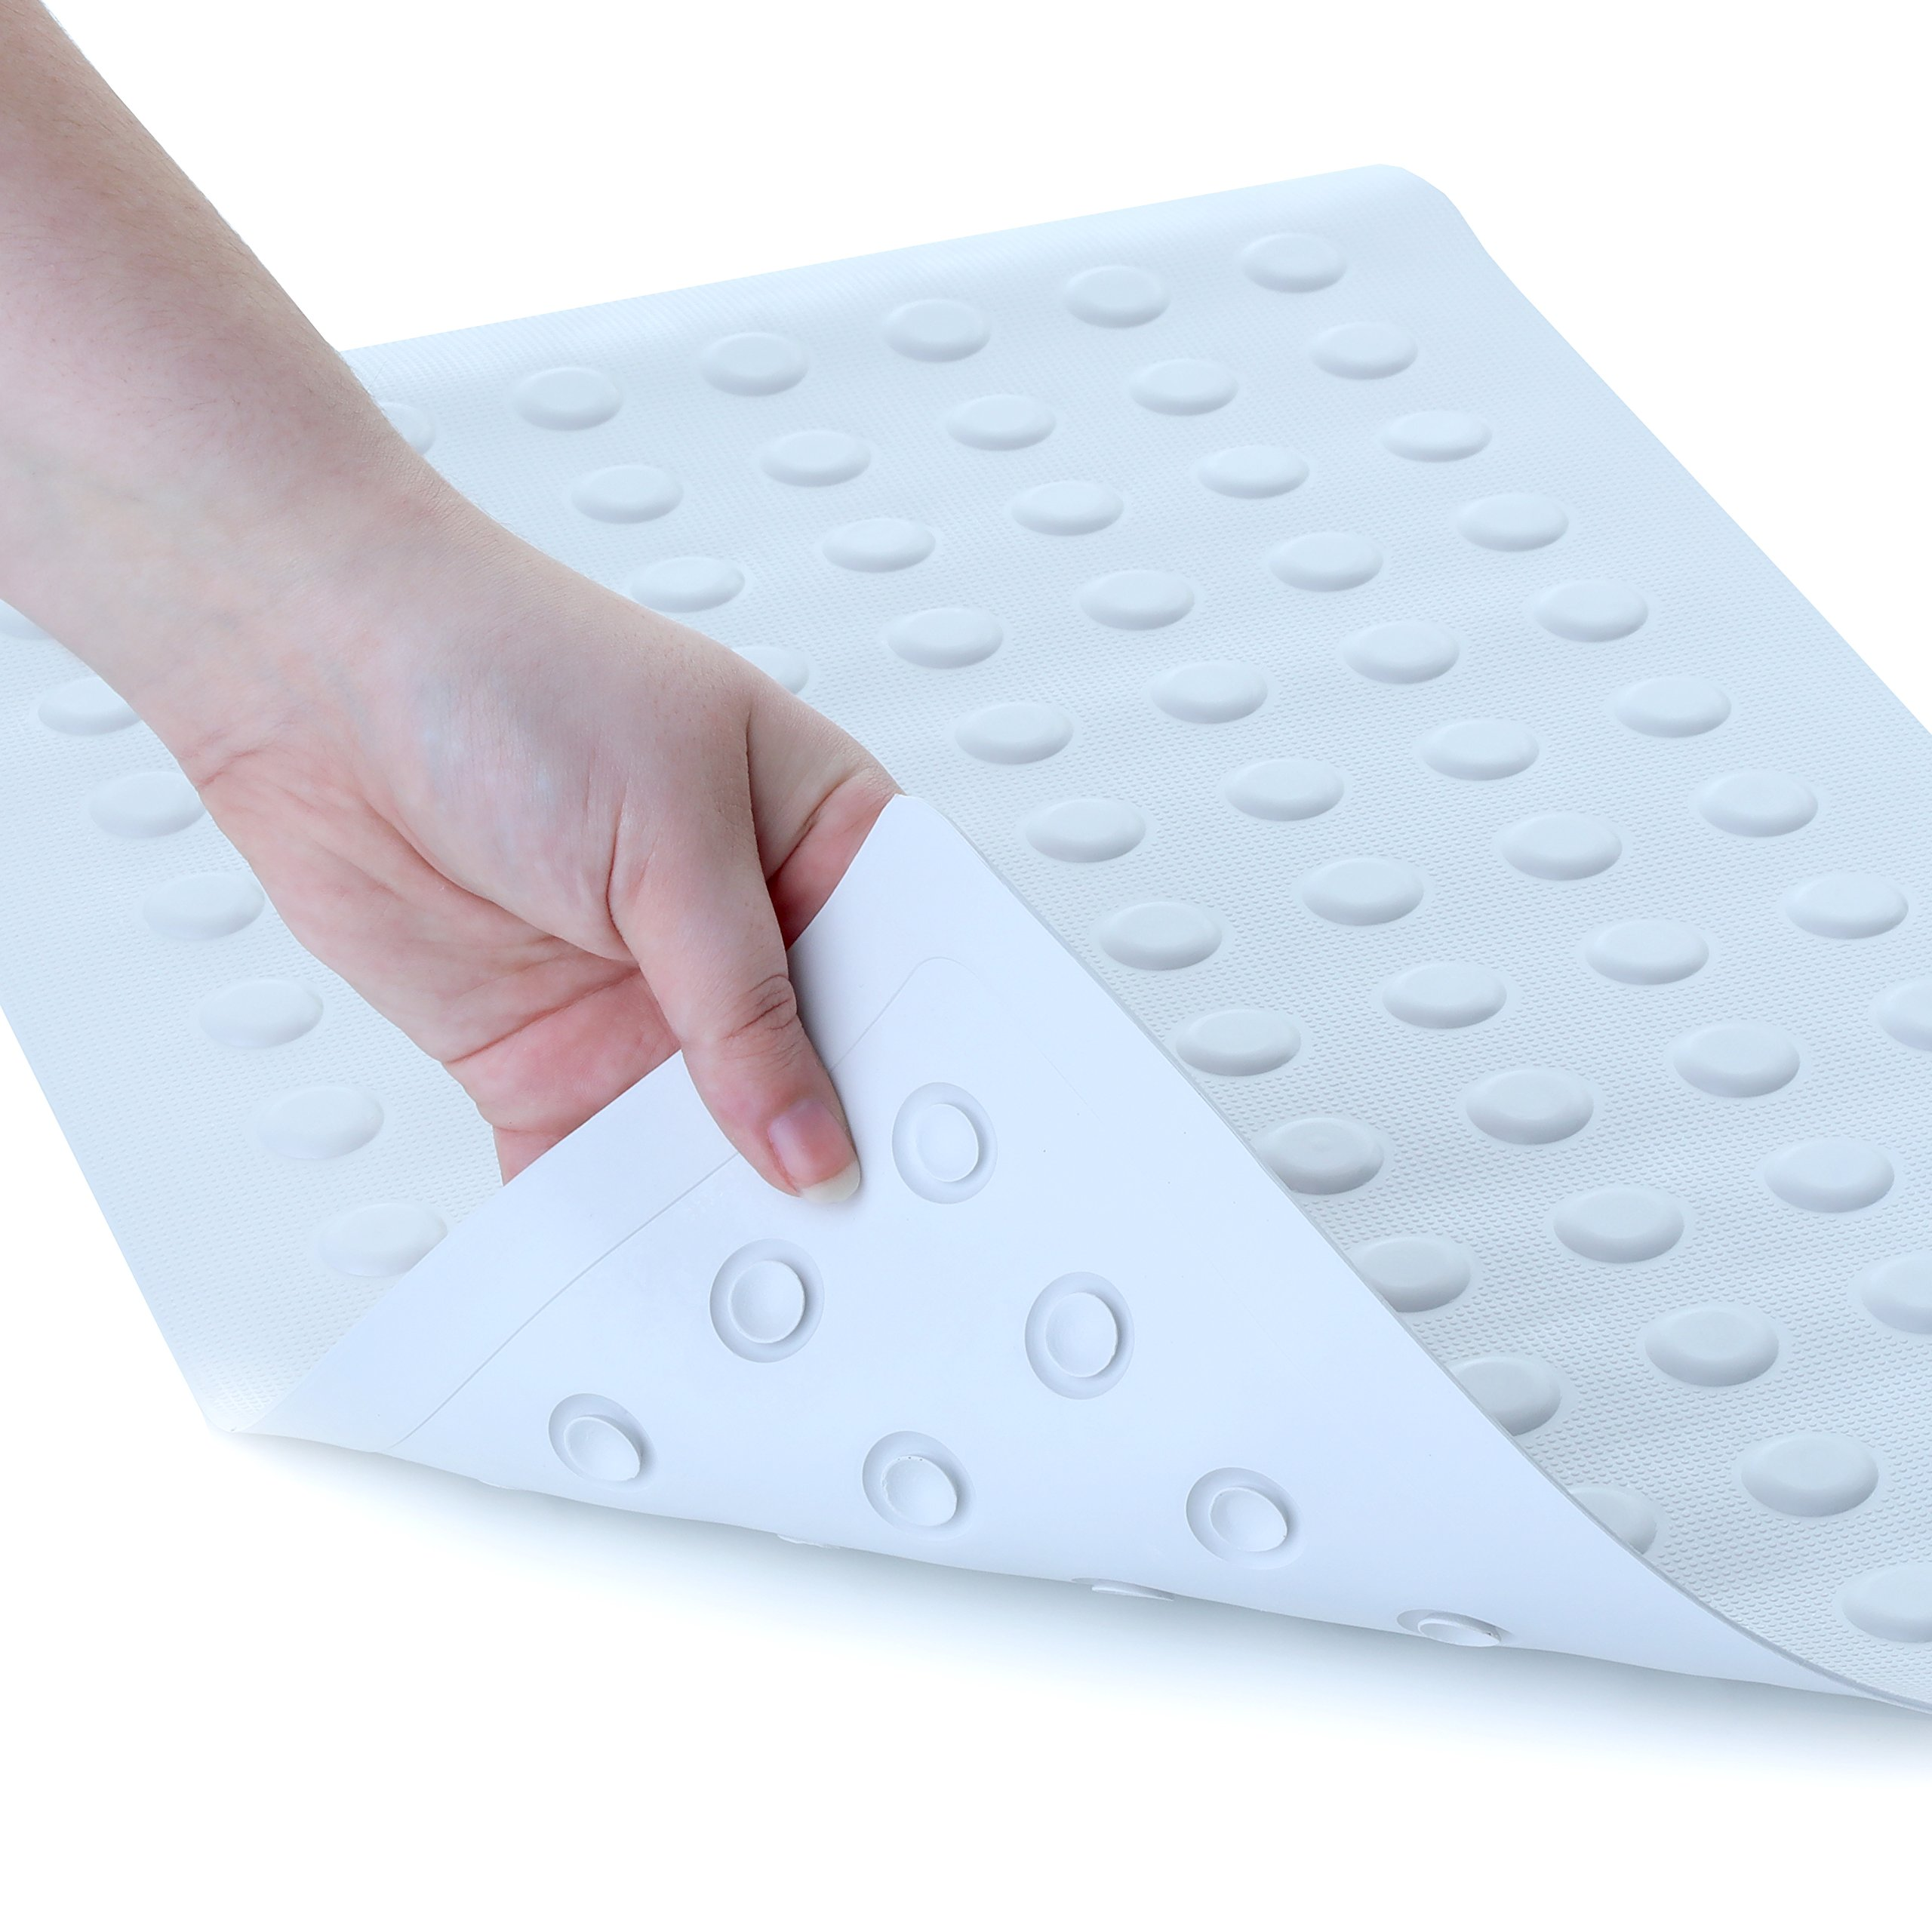 SlipX Solutions Mildew Resistant White Rubber Bath Safety Mat Features Powerful Microban Antimicrobial Product Protection (14'' x 22'', 100+ Suction Cups, Machine Washable)